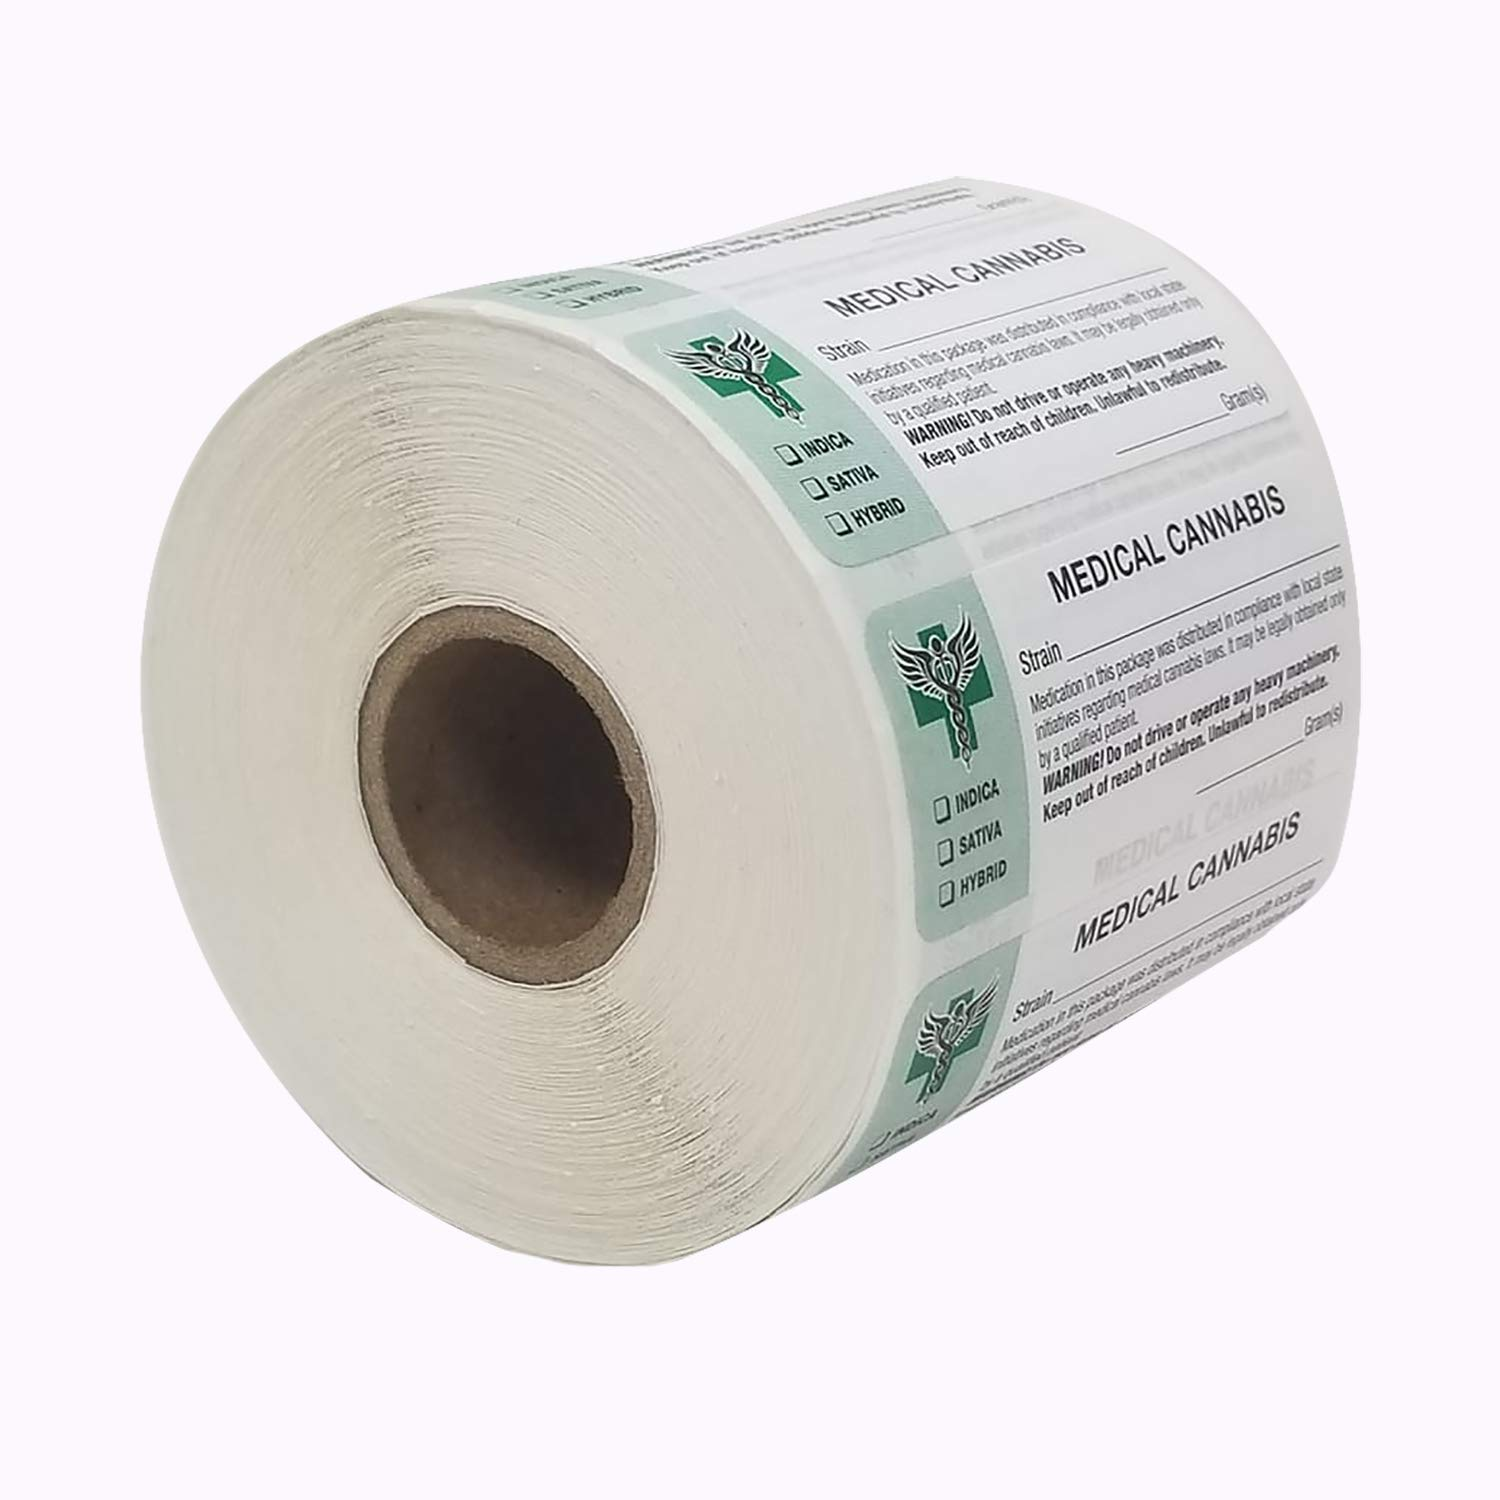 State Compliant Leaf Stickers Generic Medical Identifications Labels 1000 Labels per roll